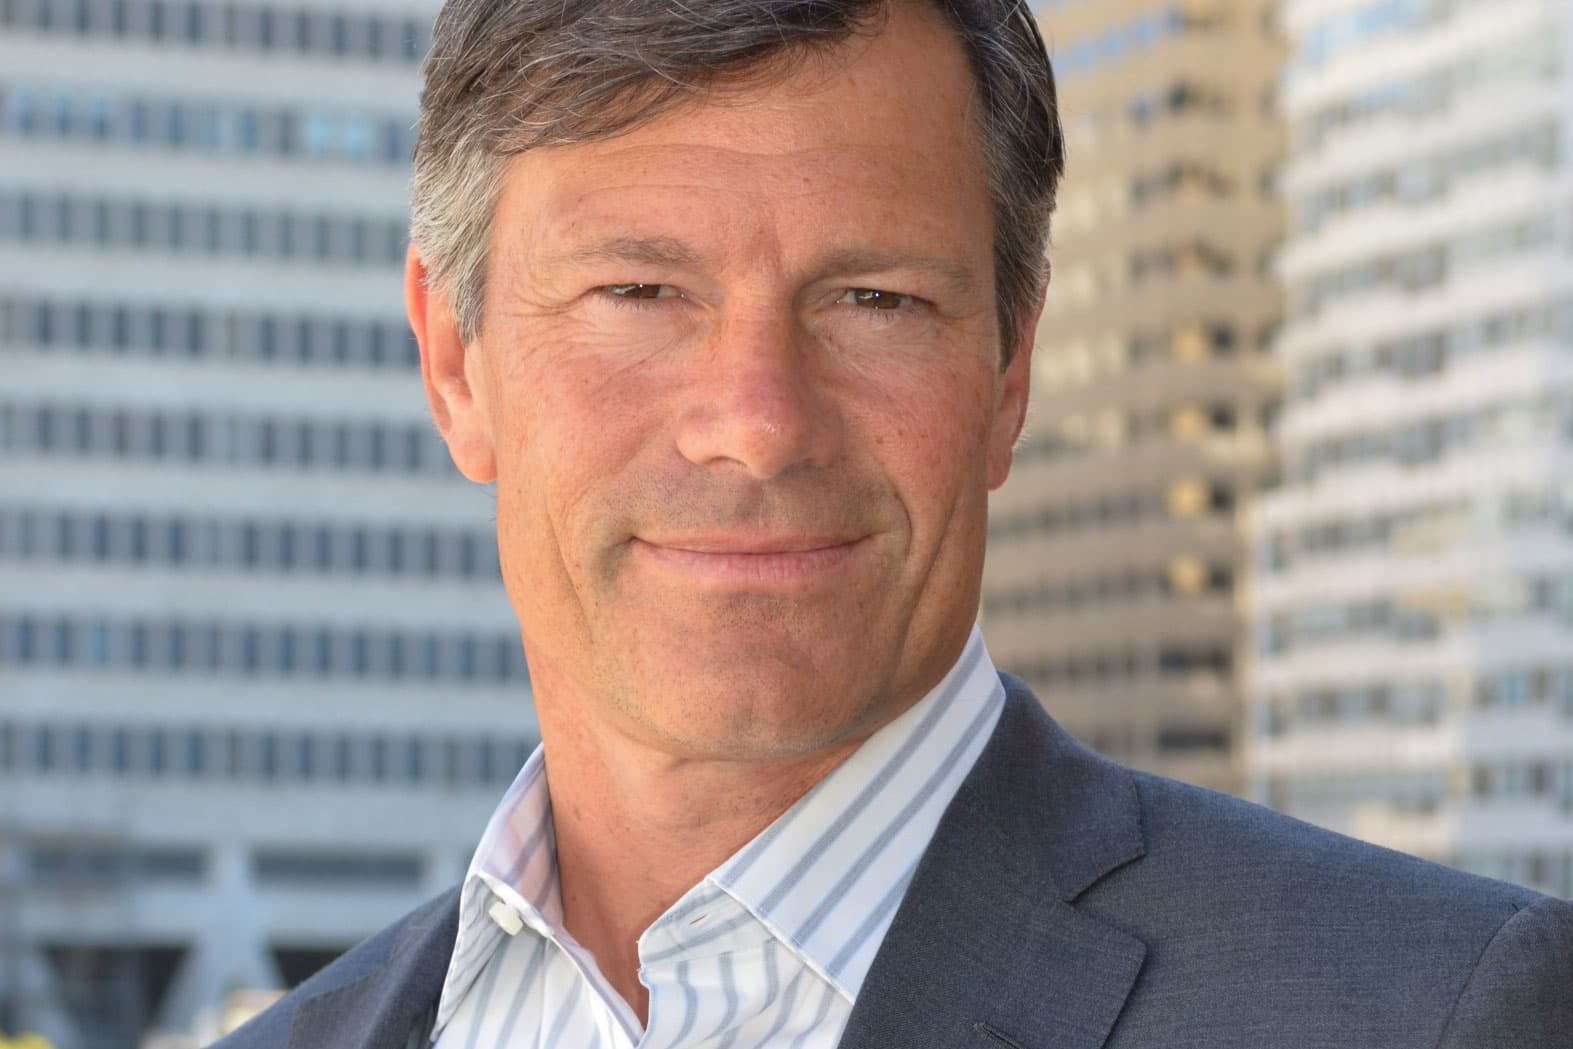 Jeff Ubben tells the FT he is leaving ValueAct for social investing: 'Finance is, like, done'